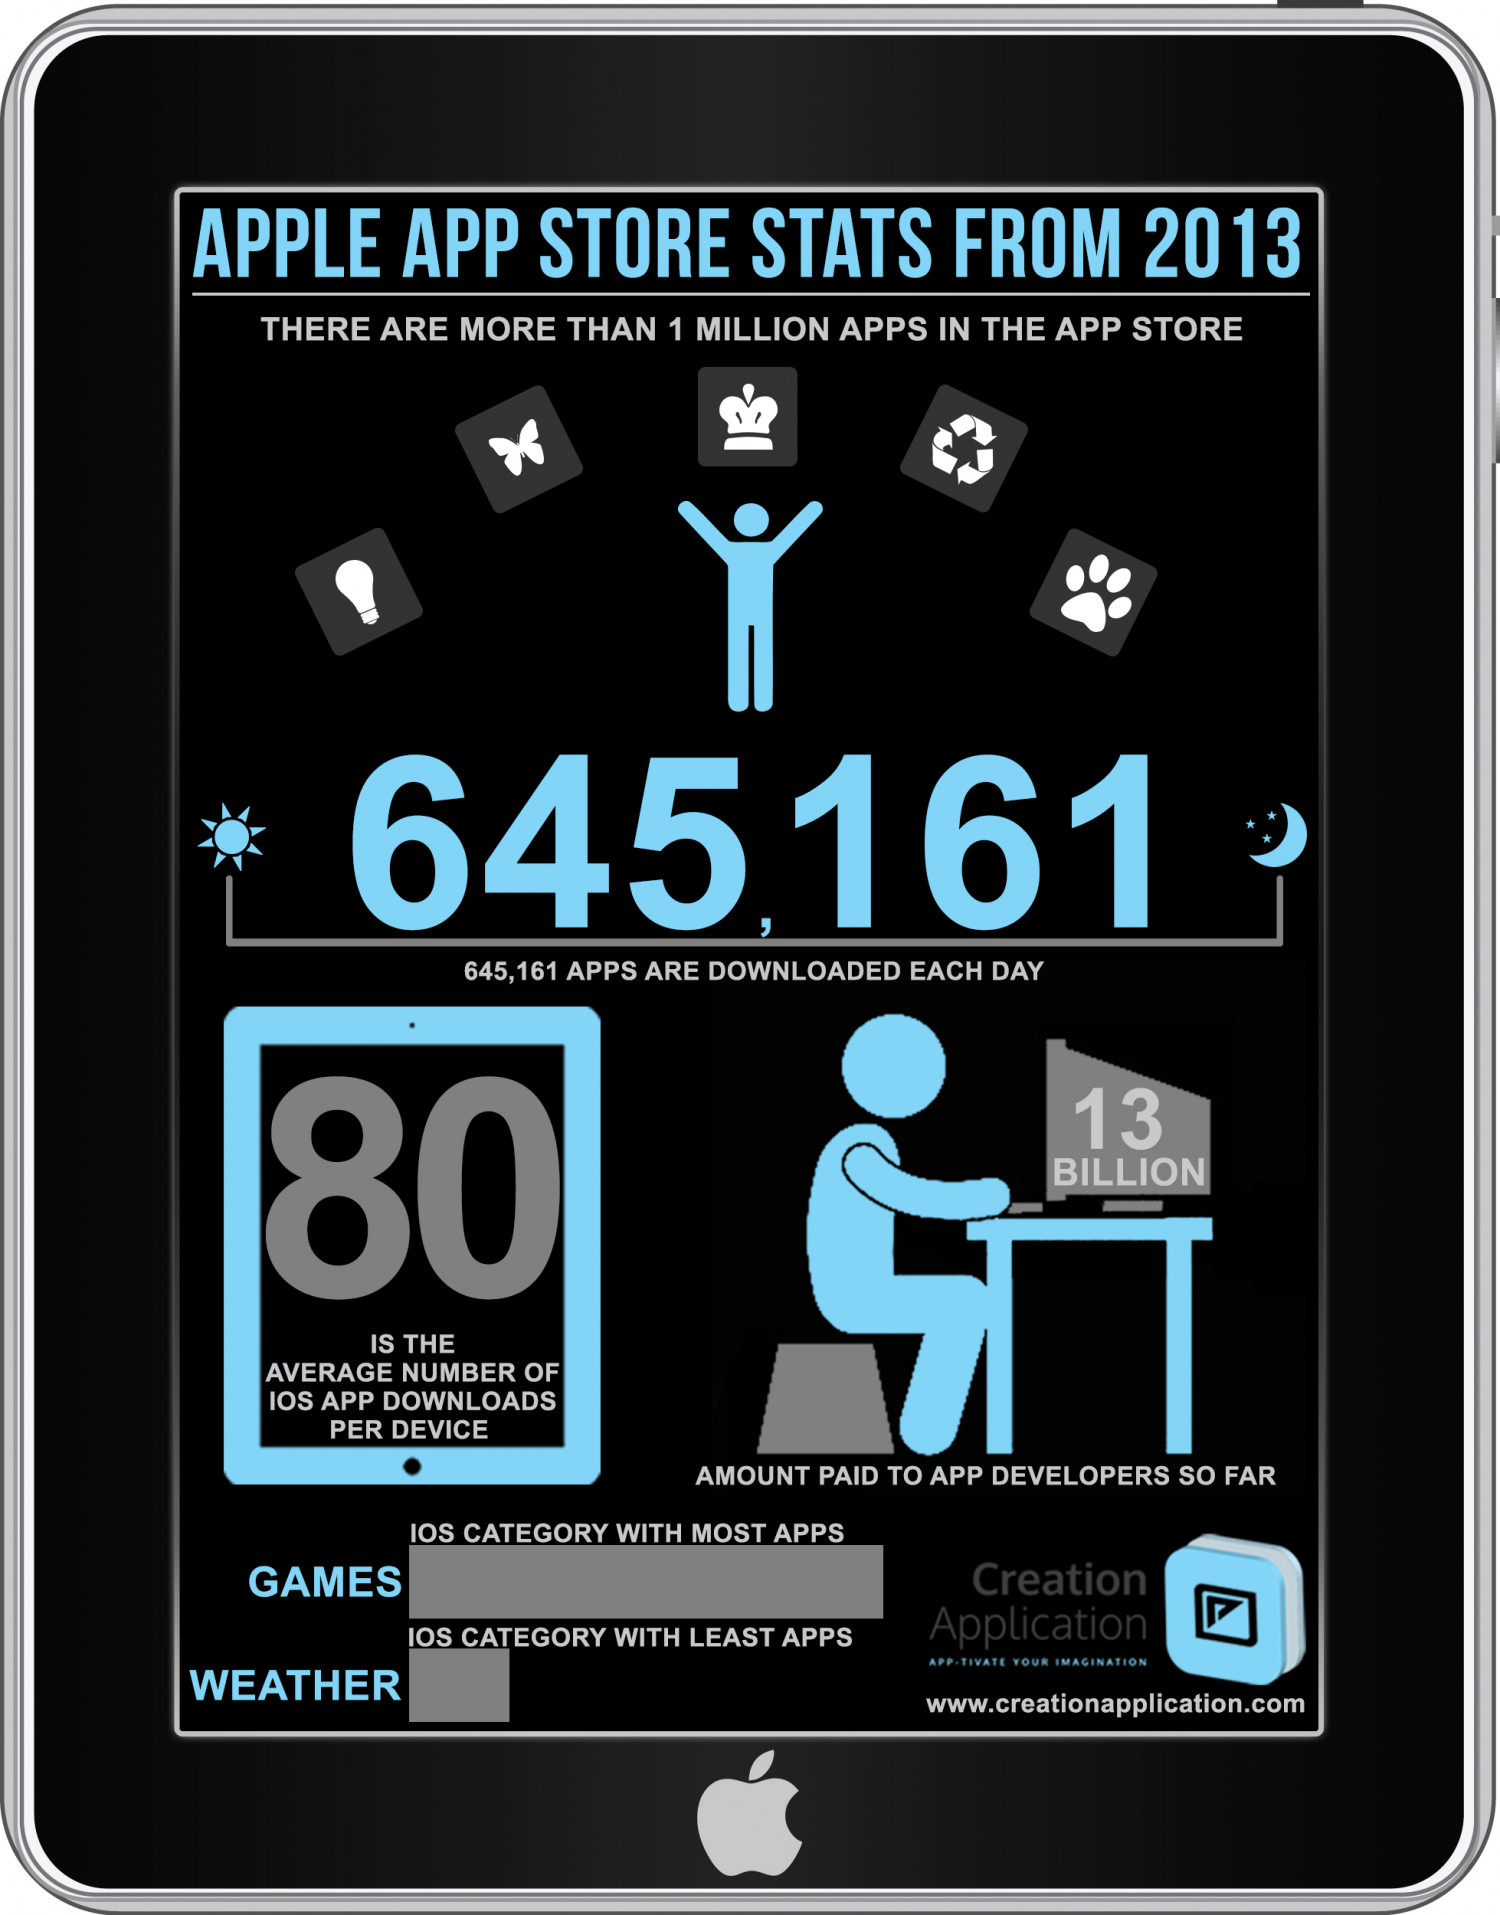 Apple App Store Stats 2013 Infographic Infographic